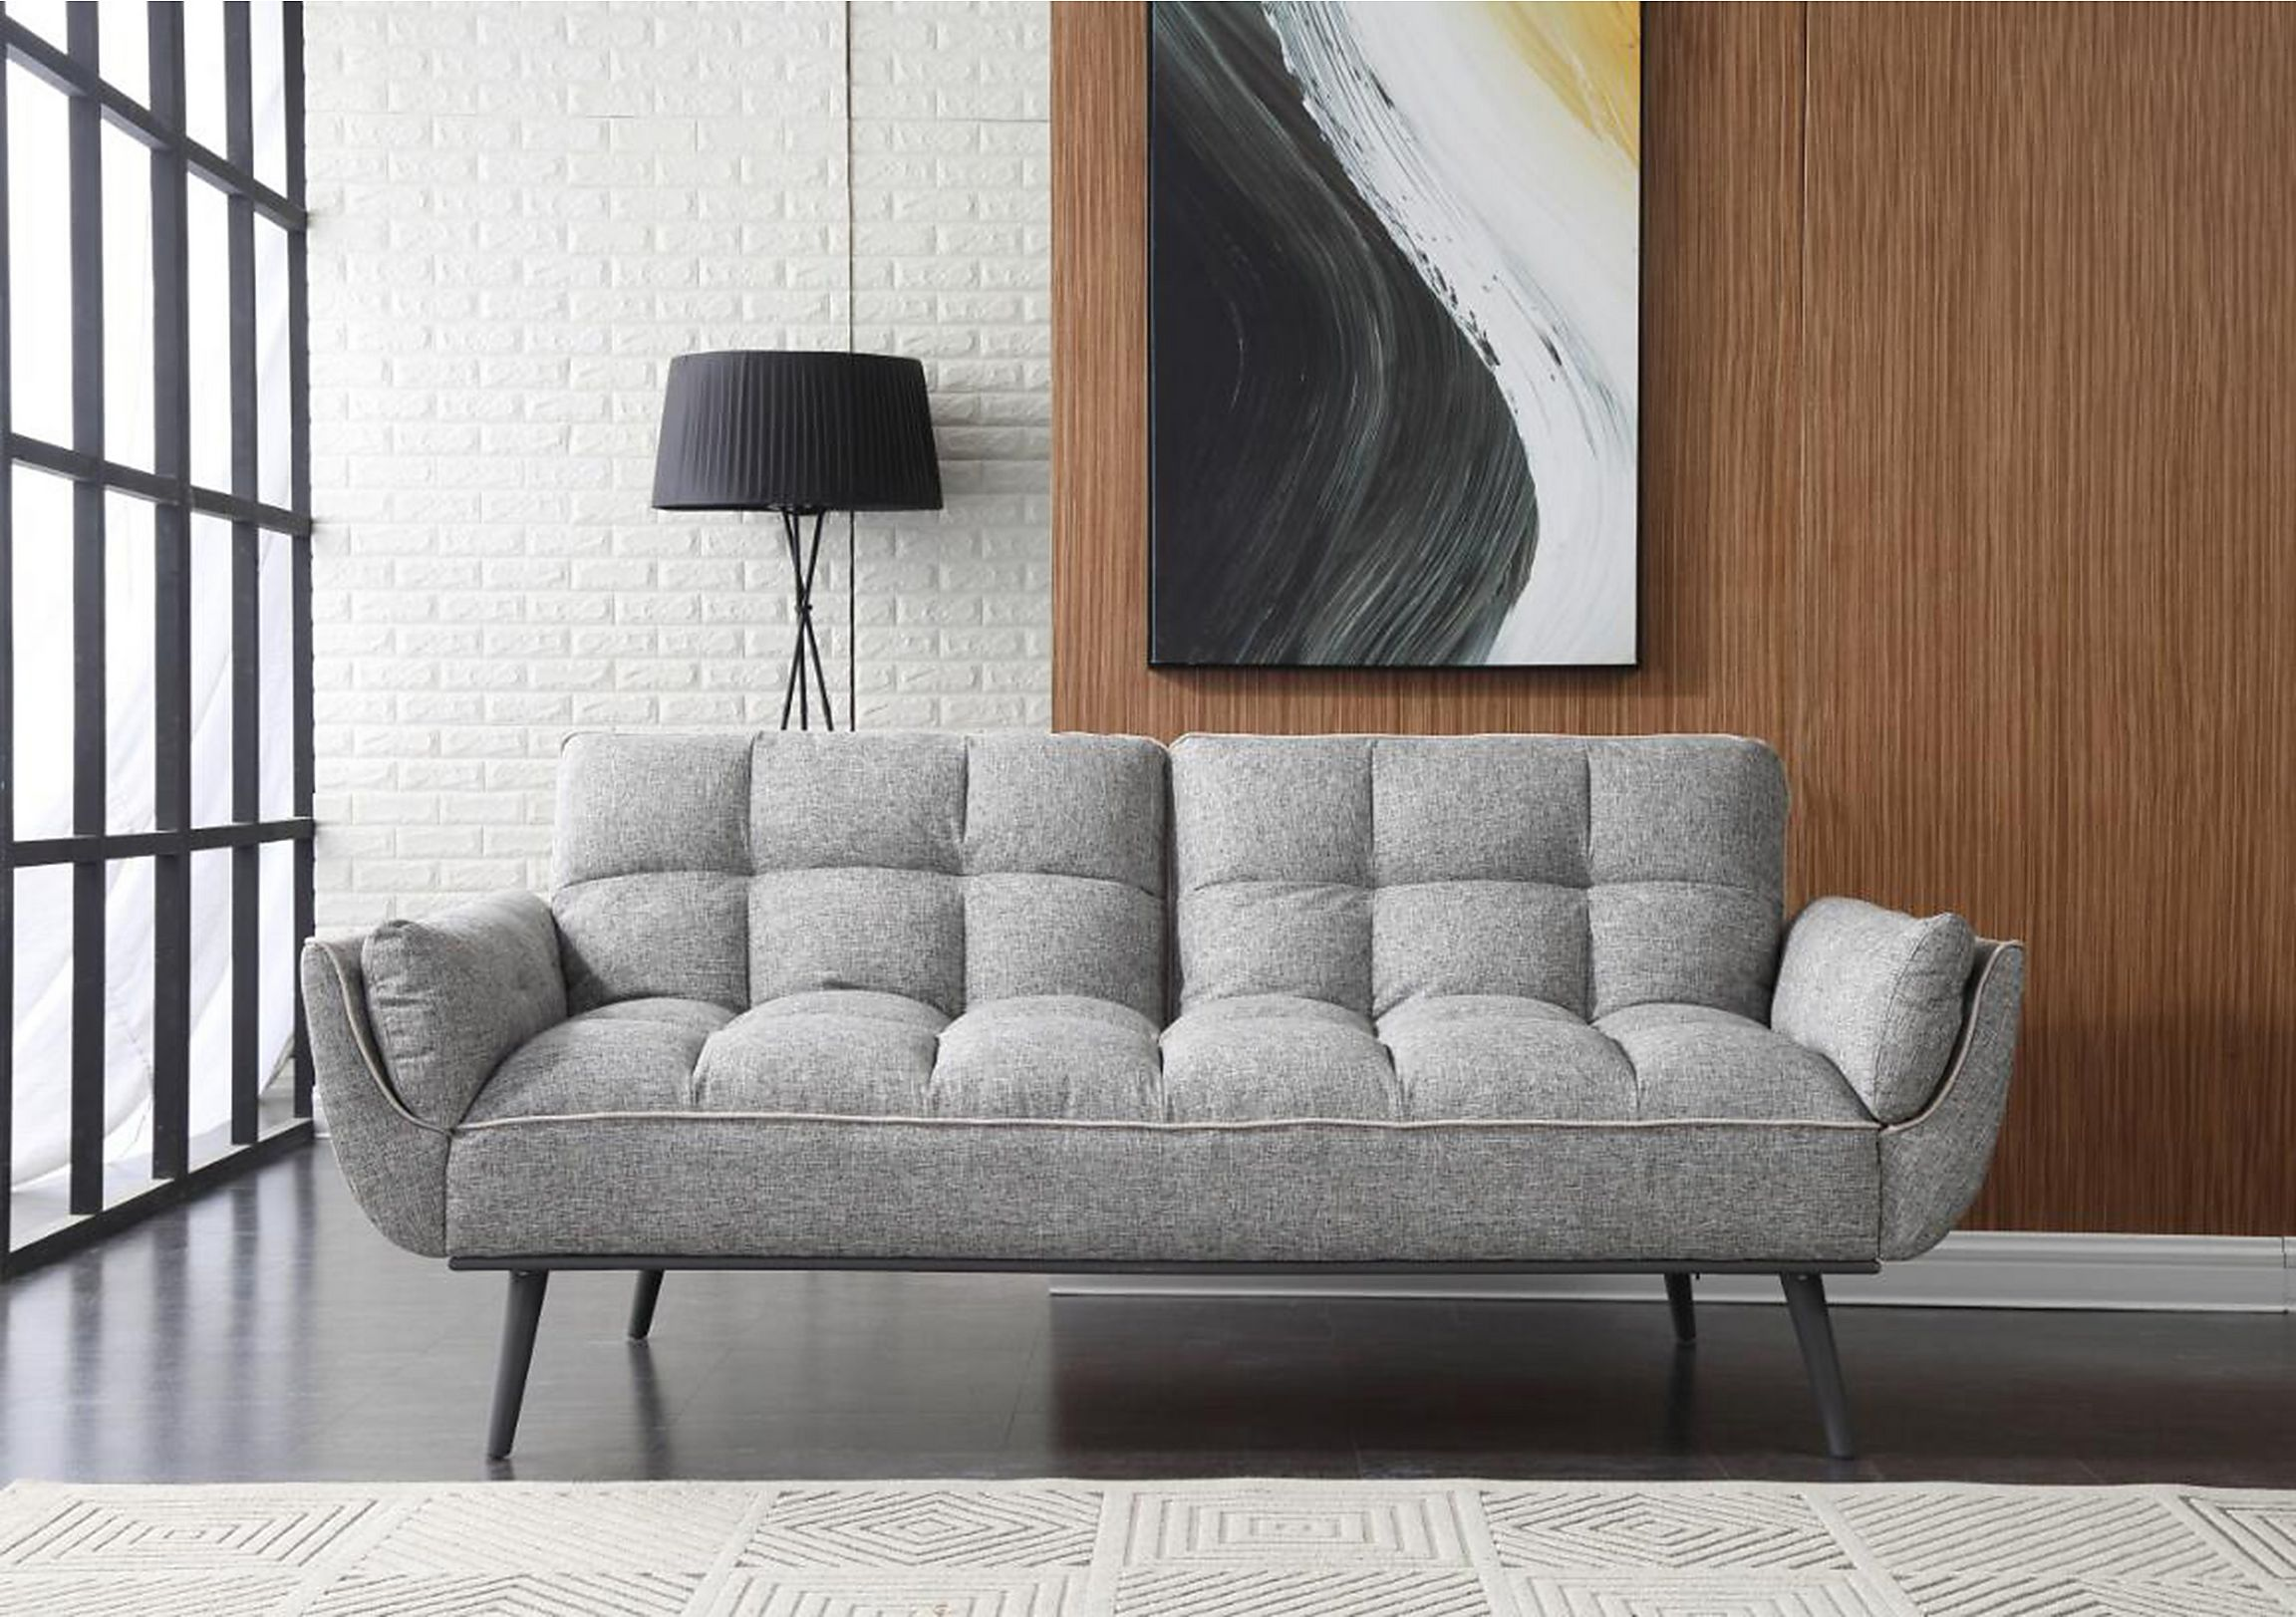 Furniture Village Interest should i buy an interest free sofa and what are the latest trends?